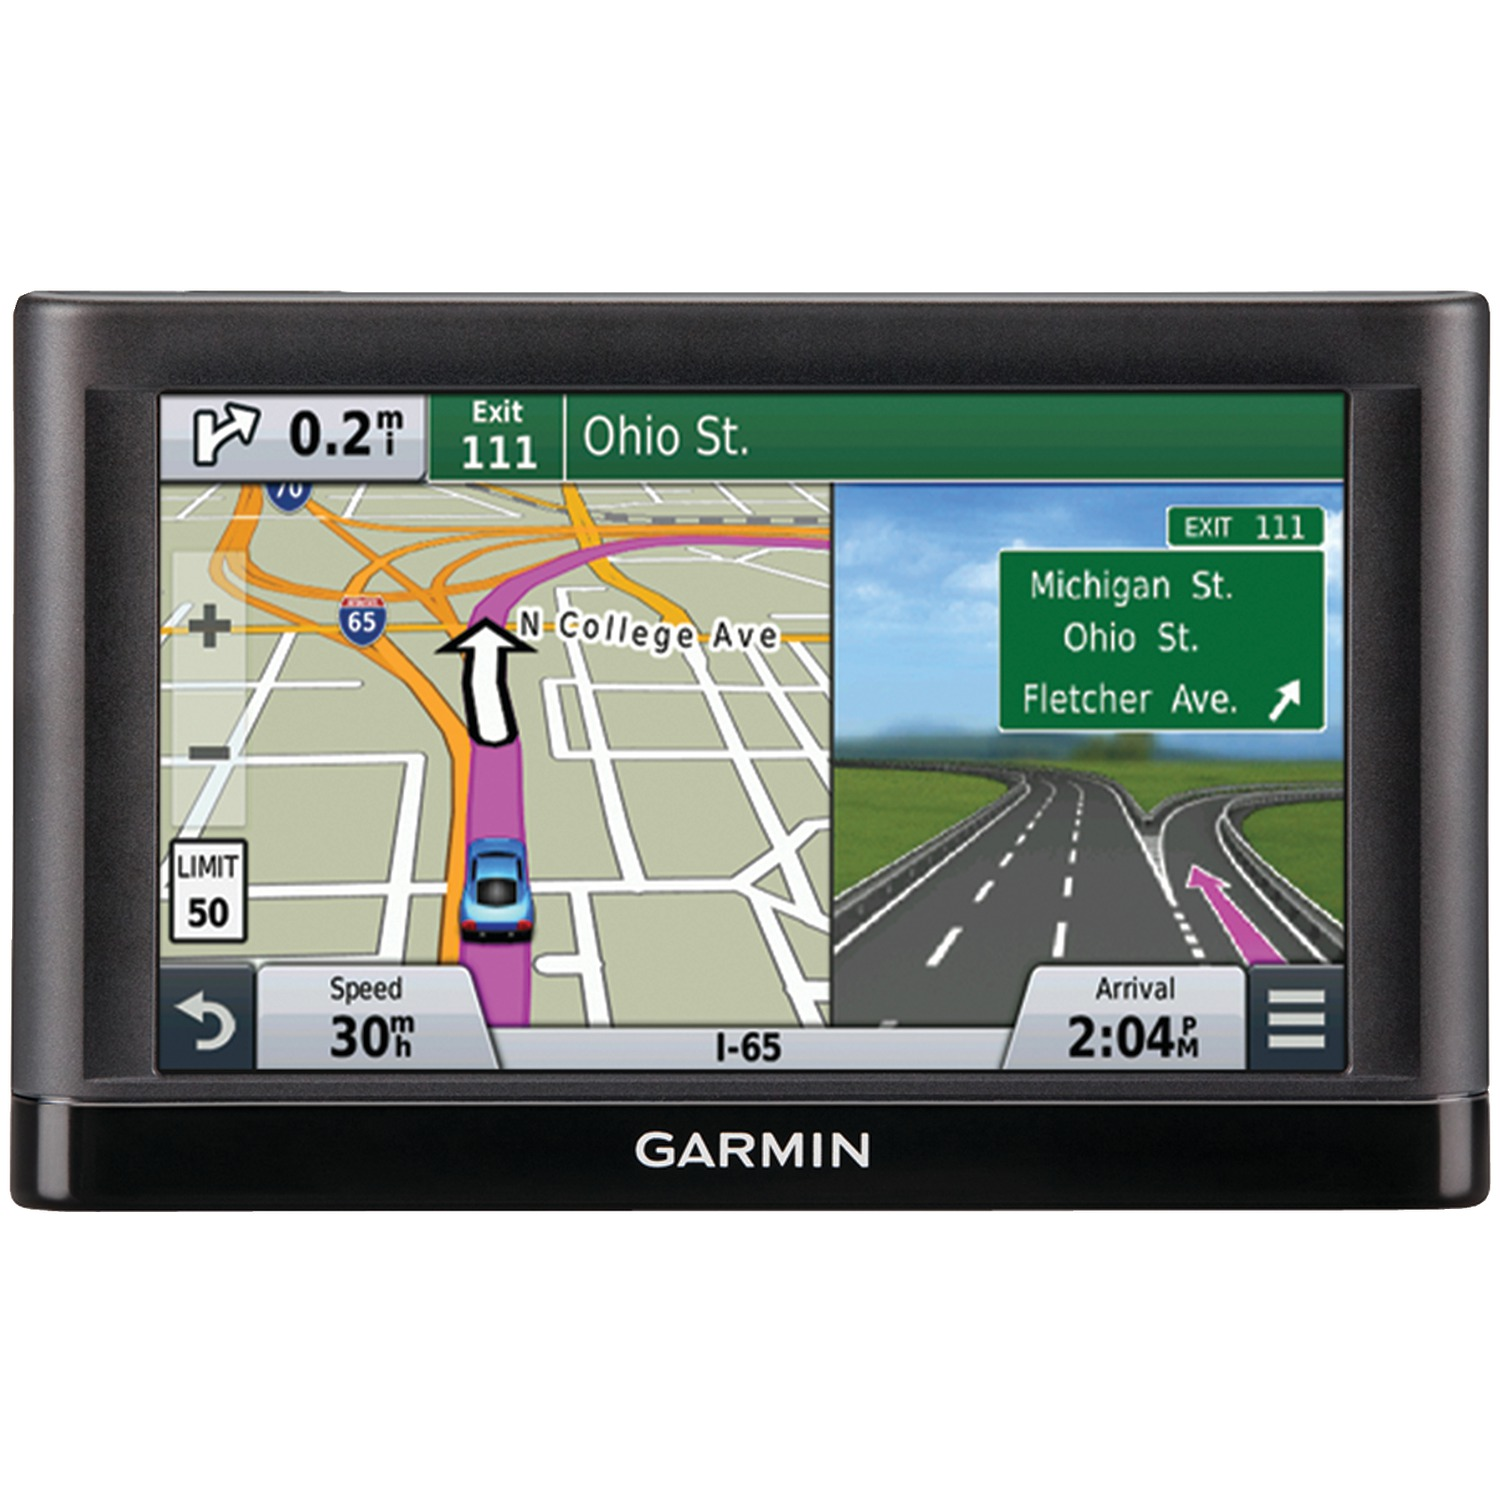 educational-gave.ml: best buy garmin gps. From The Community. Amazon Try Prime All Garmin inReach Explorer+, Handheld Satellite Communicator with TOPO Maps and GPS Navigation. by Garmin. $ $ 99 $ Prime. FREE Shipping on eligible orders. Usually ships in .